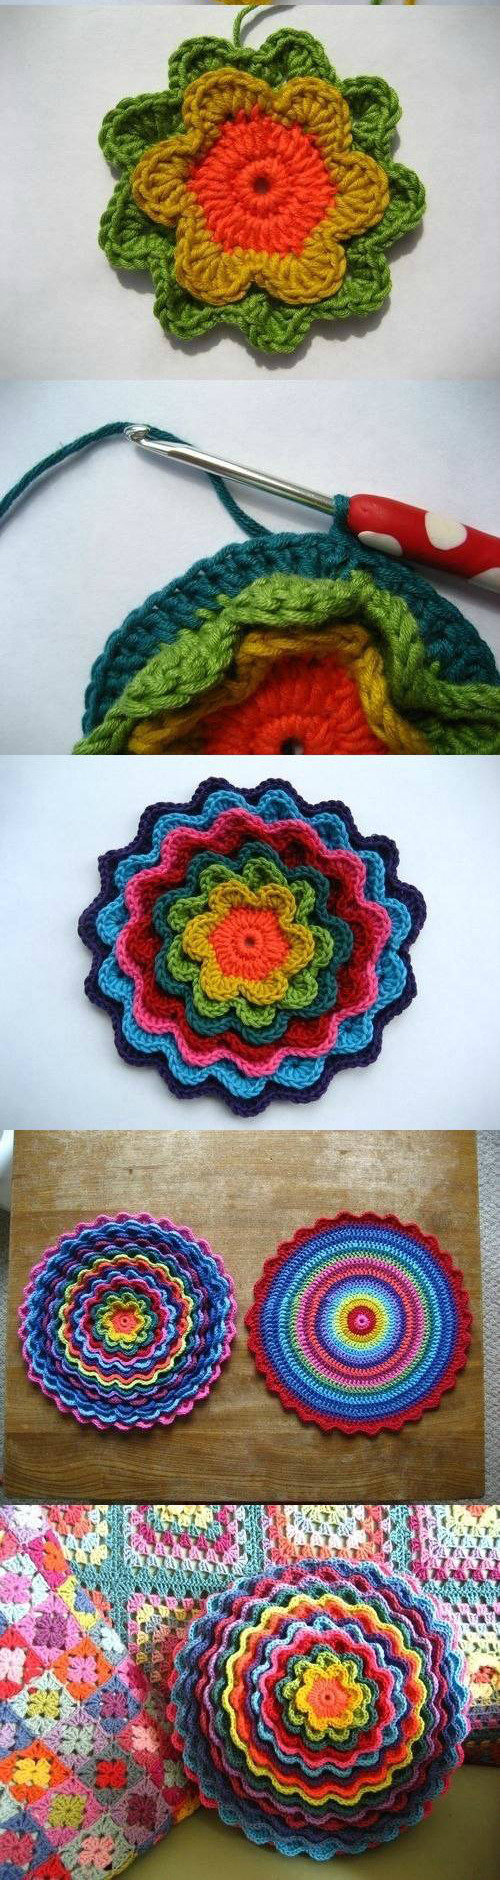 Crochet Flower Cushion Pattern Free : Crochet Blooming Flower Cushion with Free Pattern